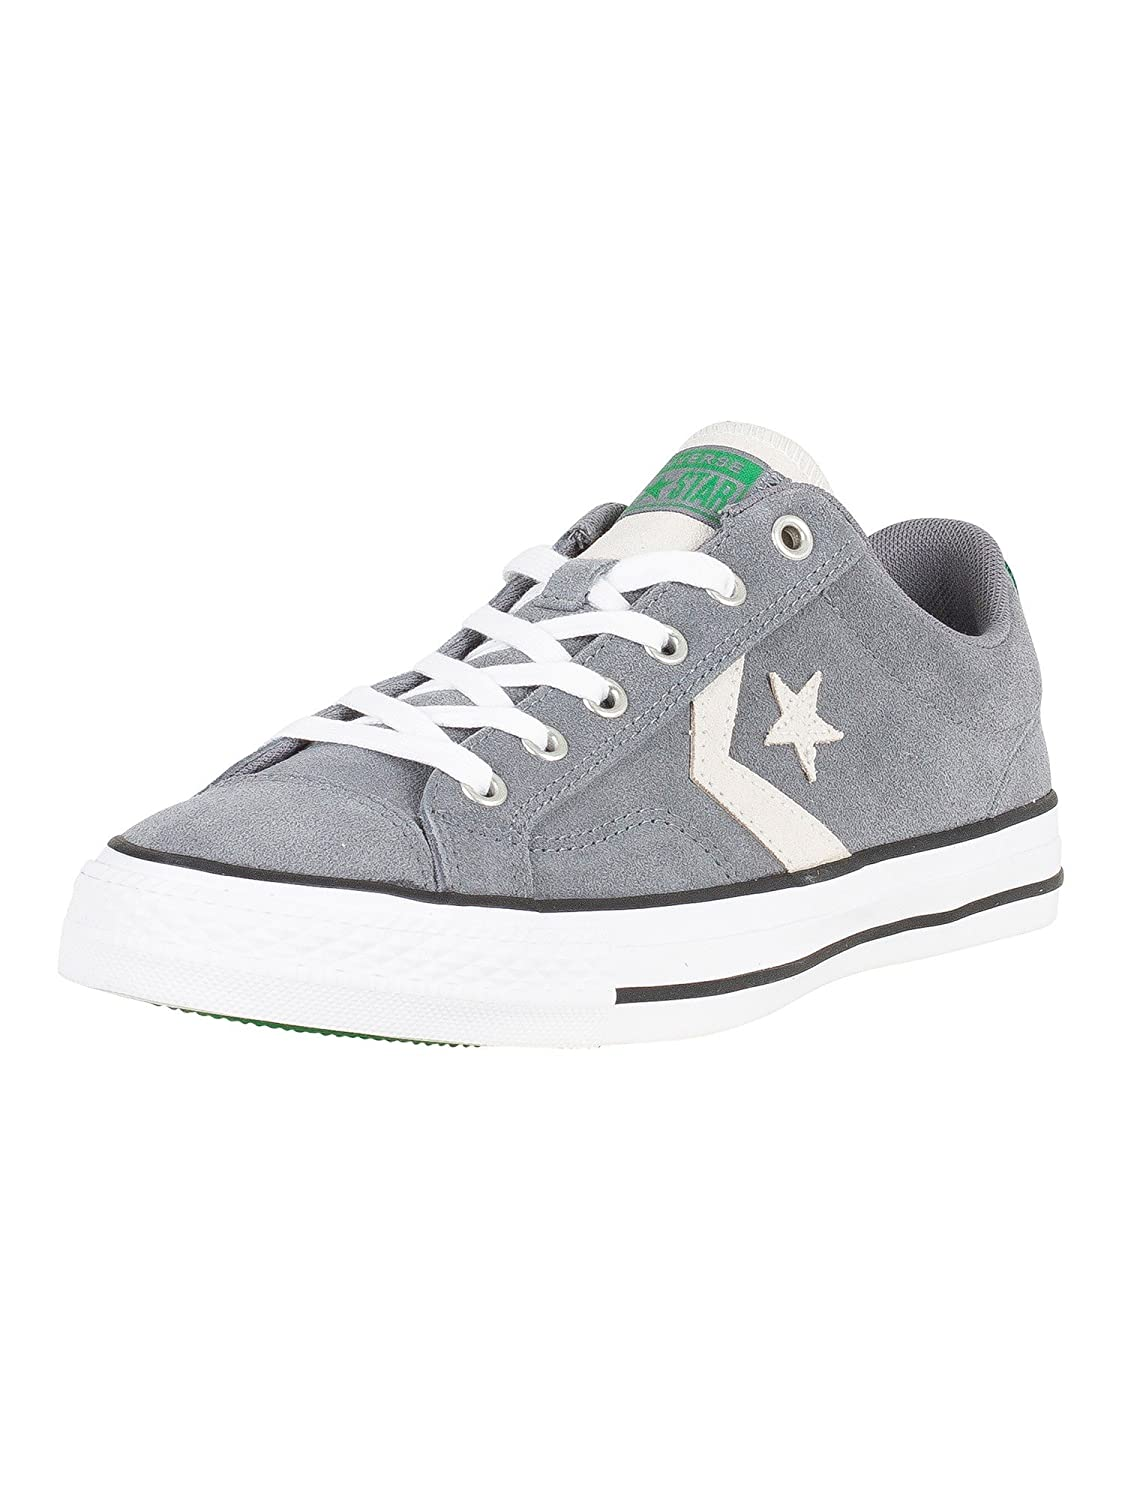 Converse Star Player Ox, Zapatillas de Deporte Unisex Adulto 44 EU|Multicolor (Cool Grey/White/Green 039)